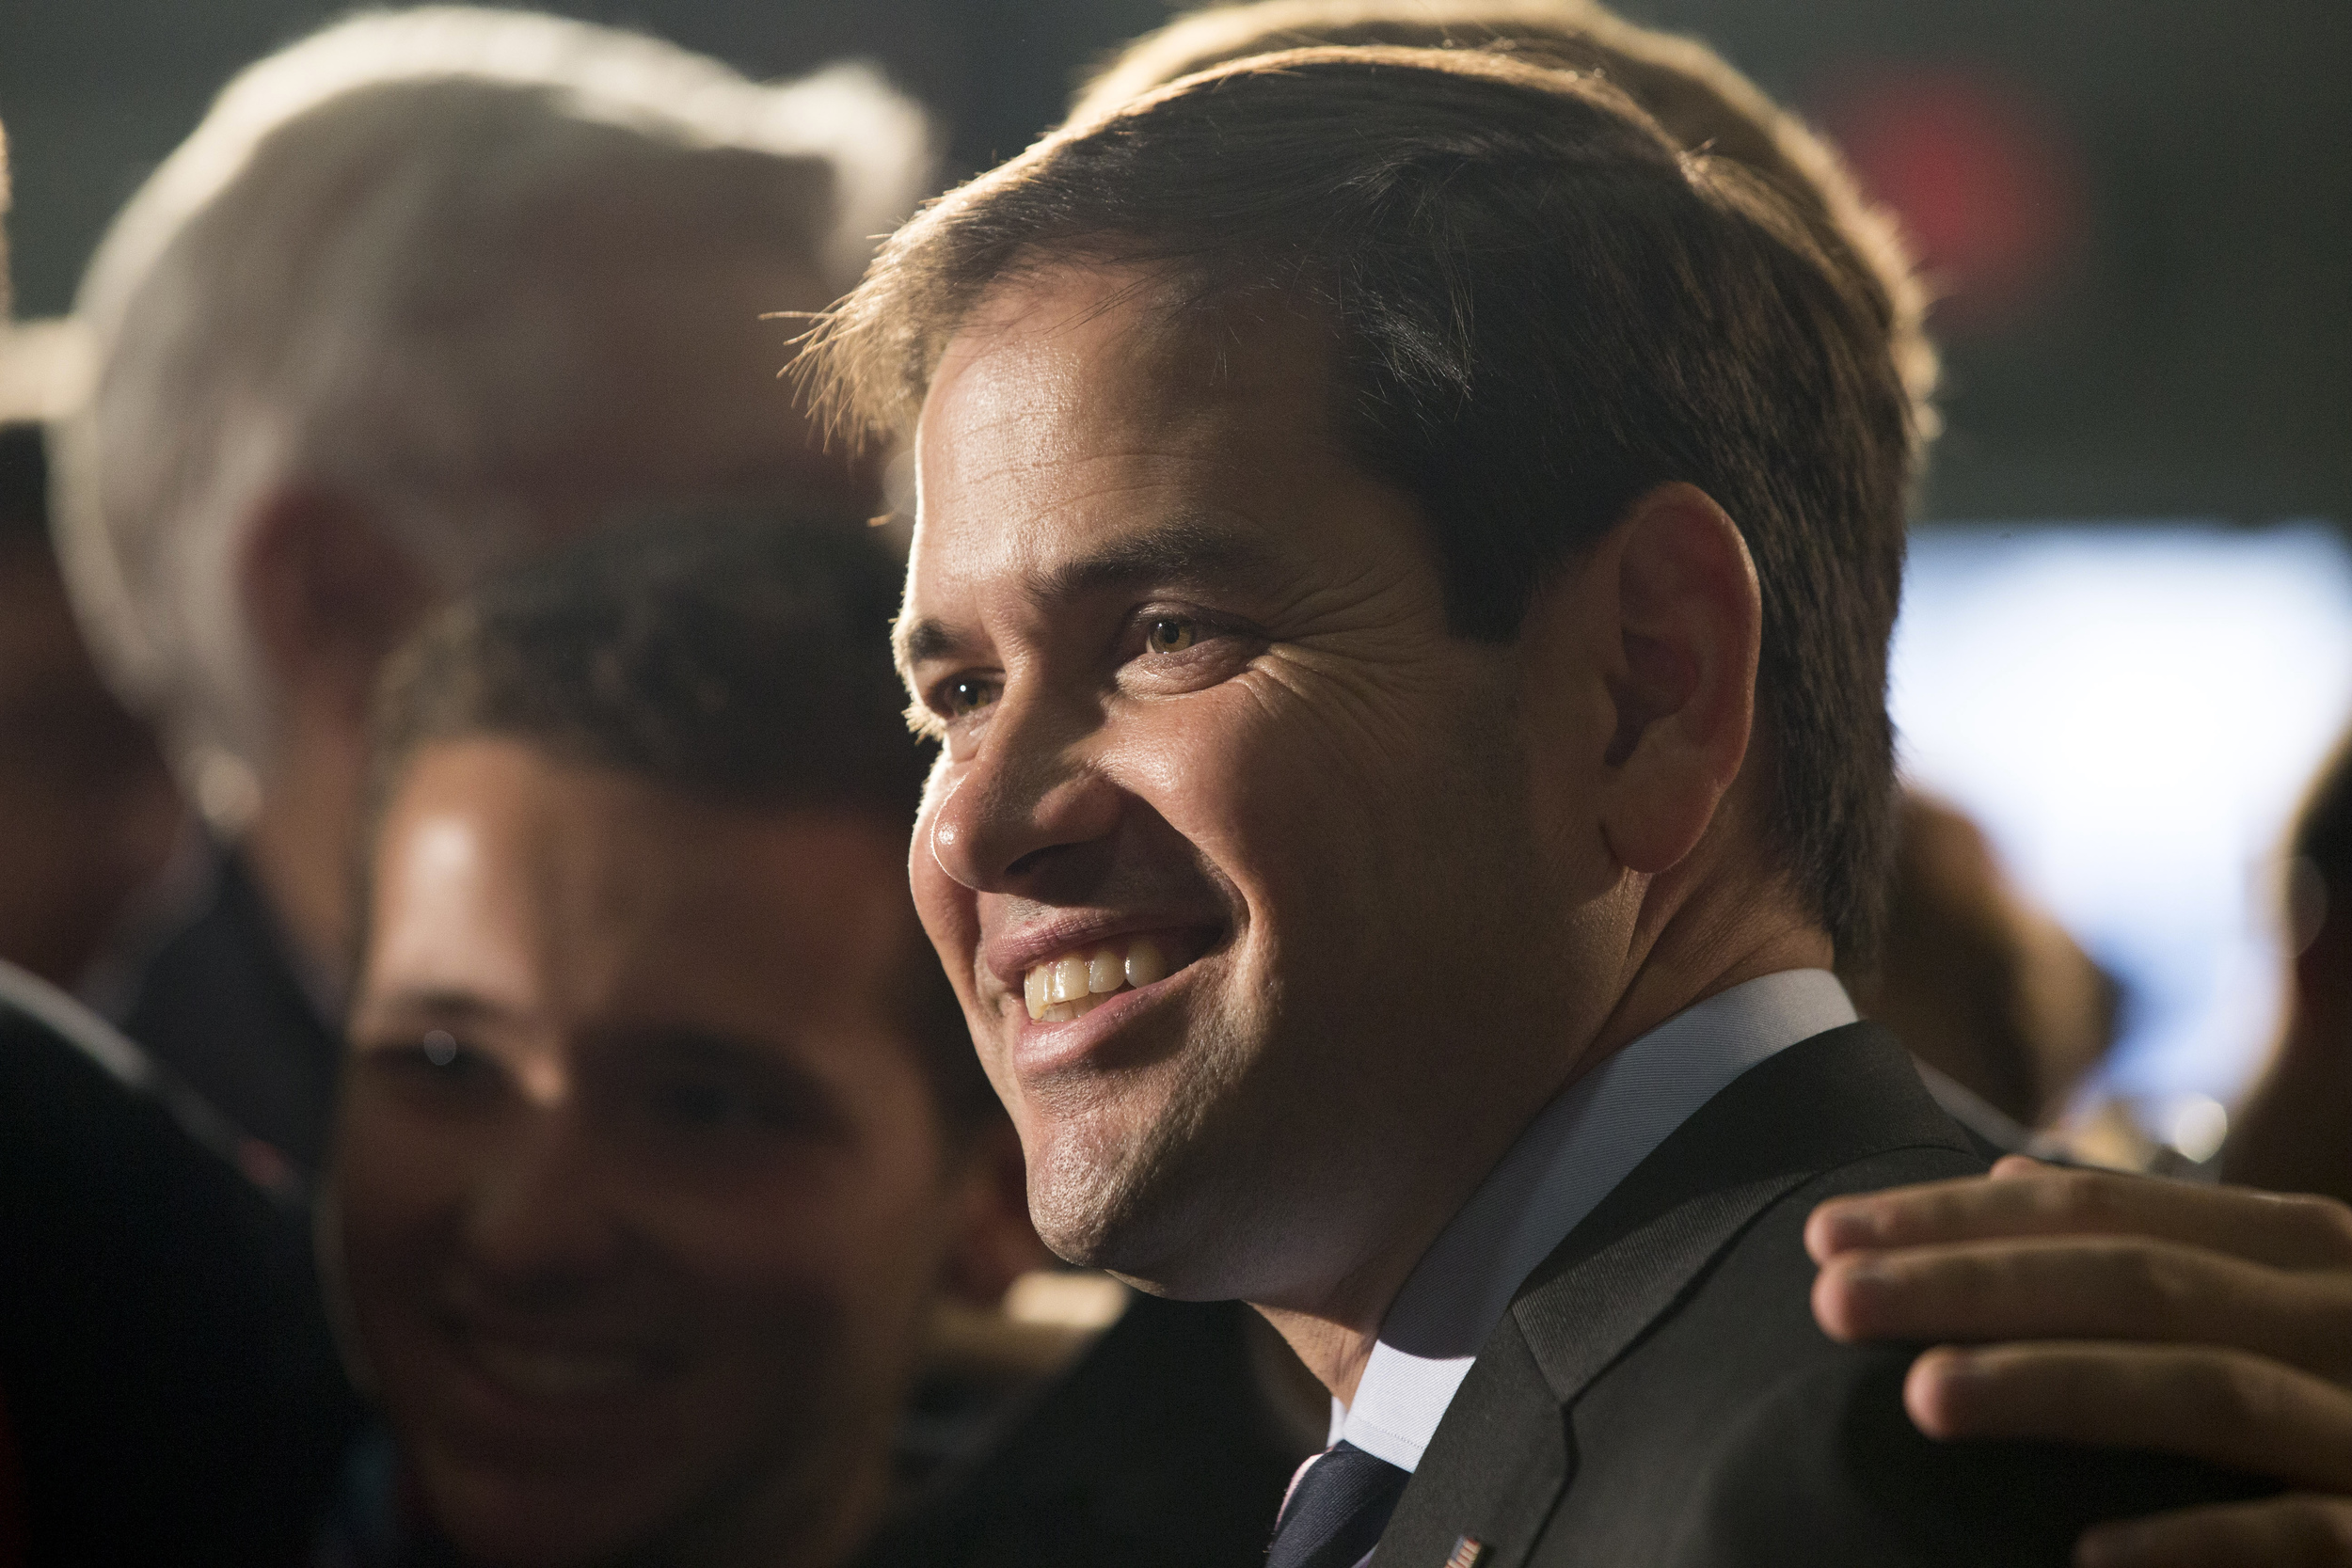 Sen. Marco Rubio, R-Fla., poses for photos during a stop at BOC Water Hydraulics on Friday, Oct. 16, 2015, in Salem, Ohio. Rubio spoke about energy during a speech for his Republican presidential campaign tour. (Scott R. Galvin/AP)